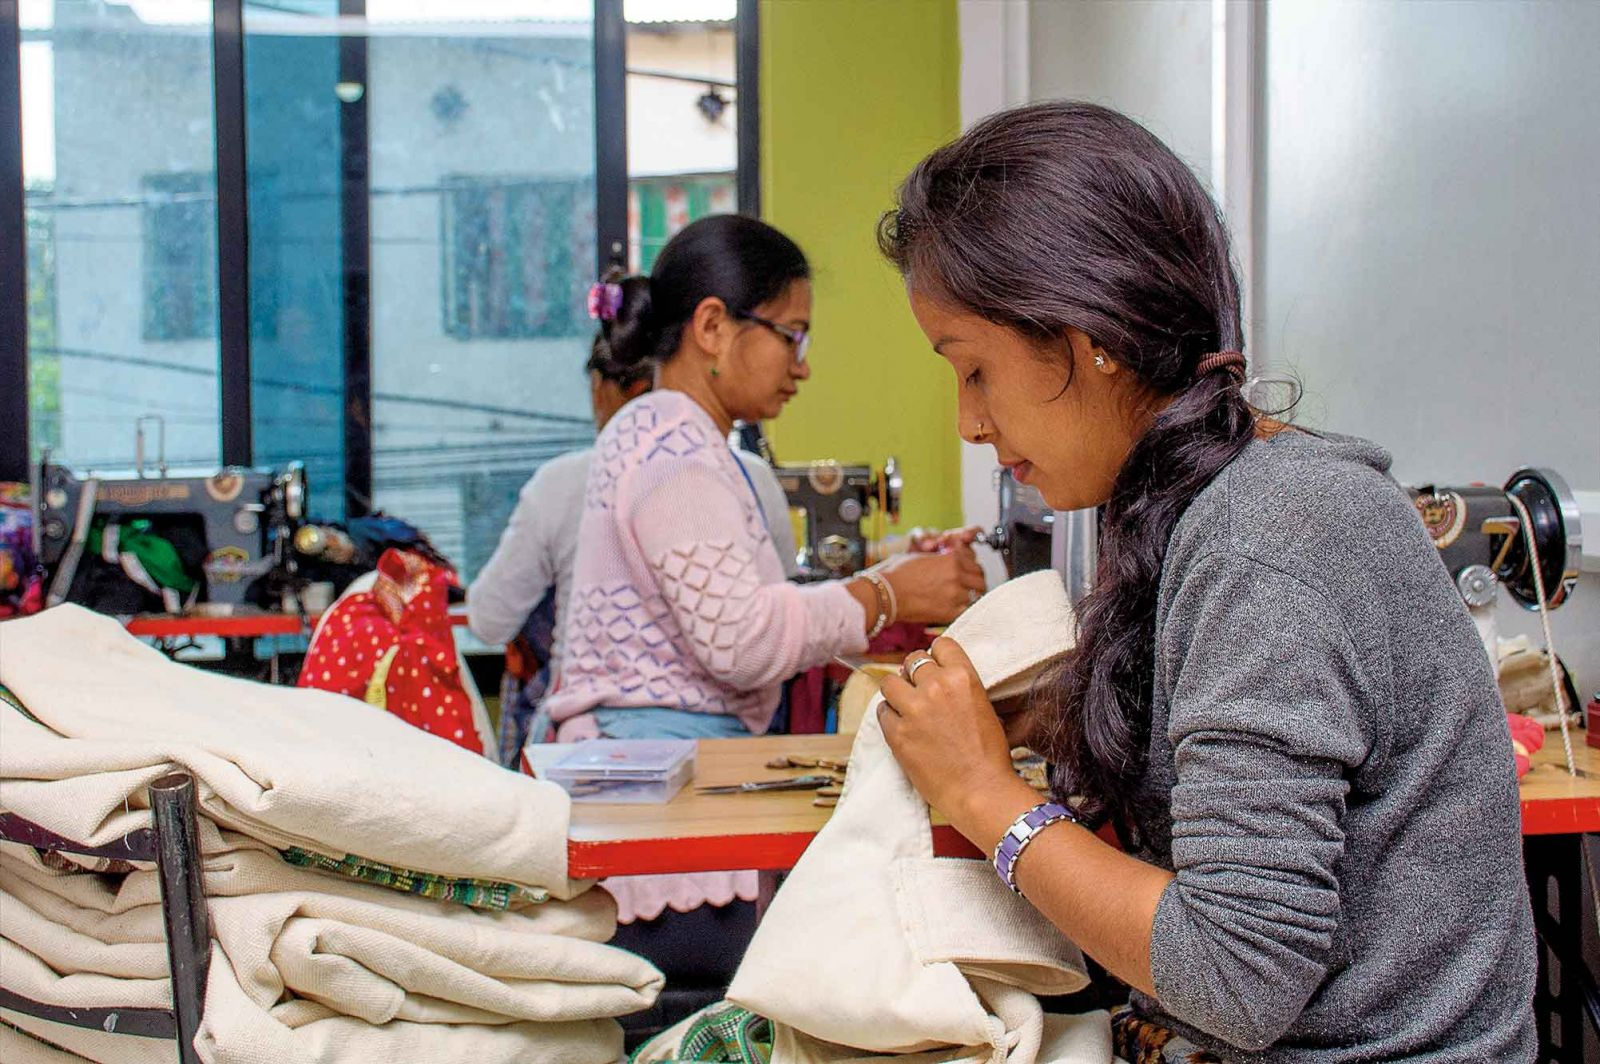 Danfe nepalwhere girls find a new life craftmakers ecsnepal i really enjoy working here at danfe nepal i have gotten a wonderful opportunity here and i am very happy about it as i am able to utilize my skill for ccuart Images